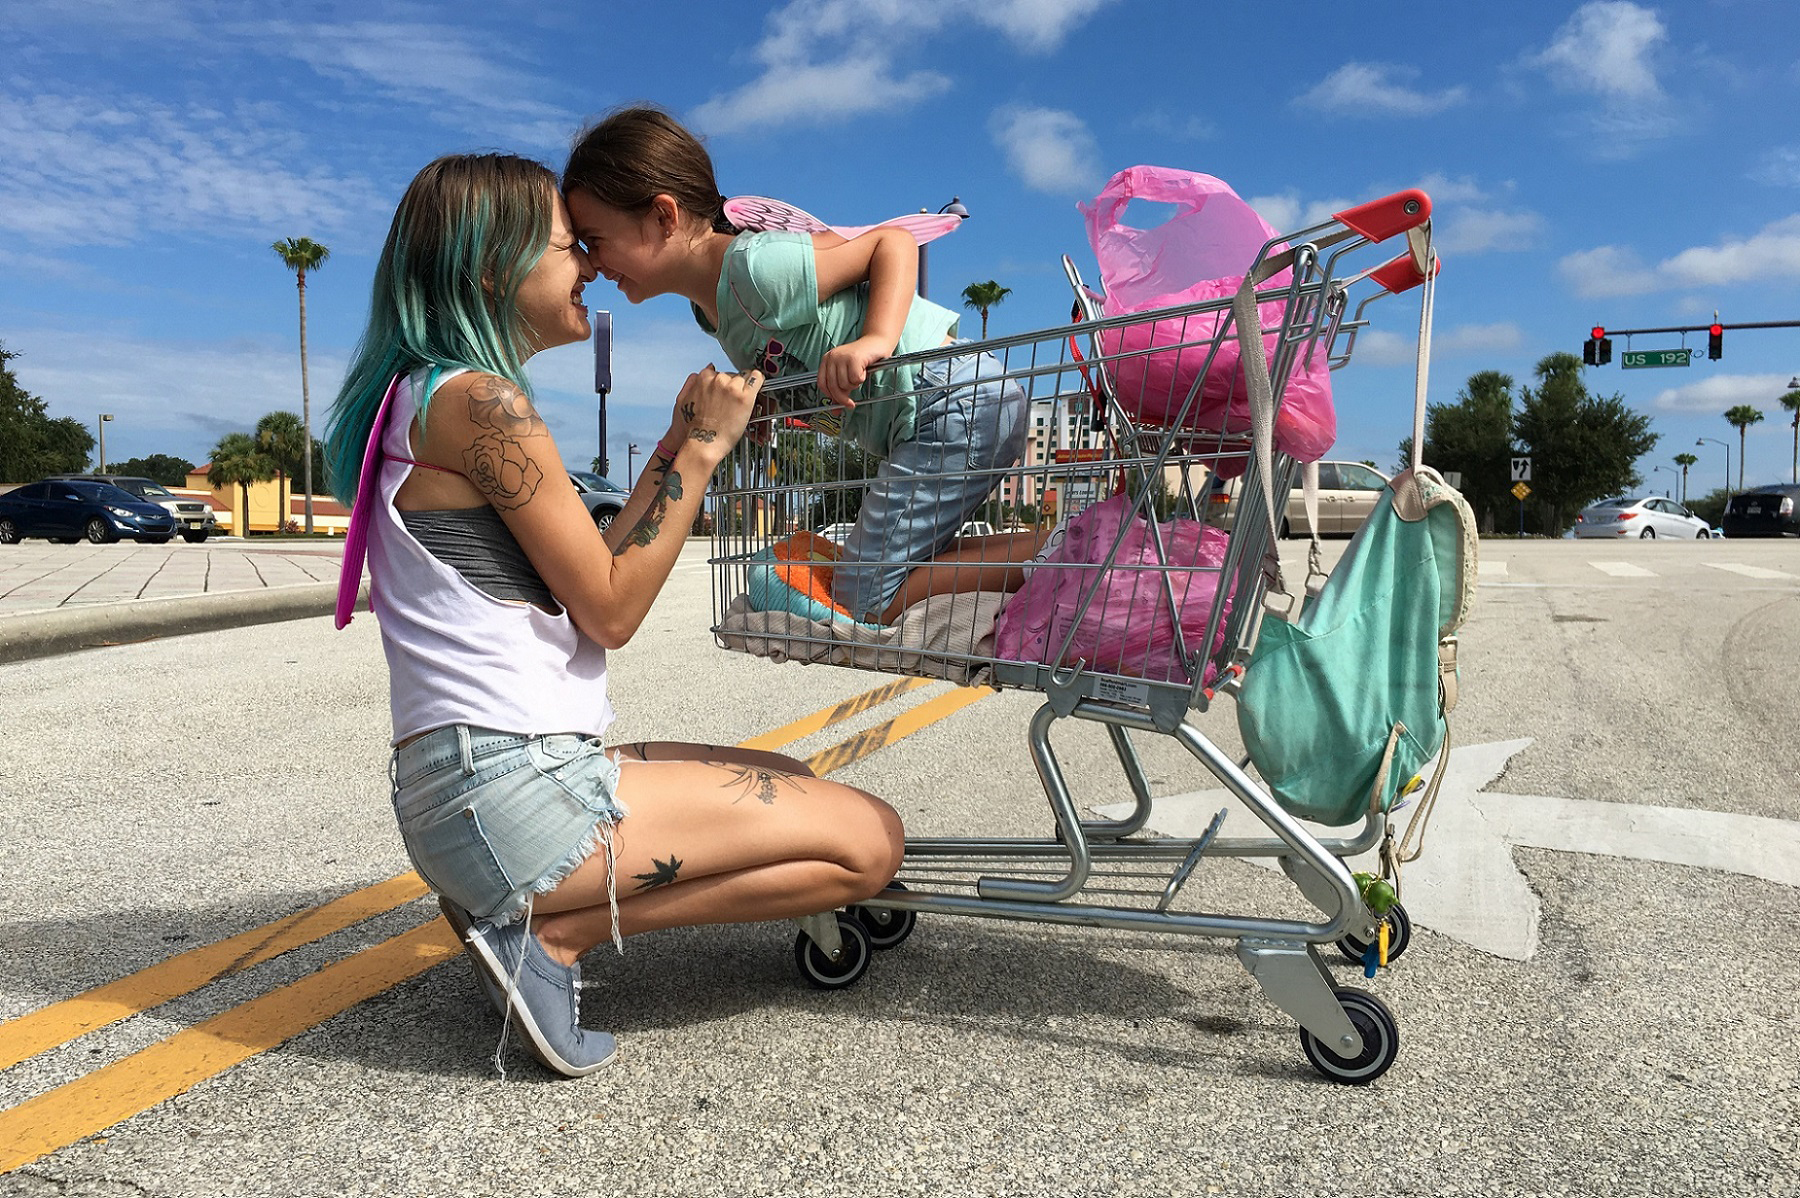 FK3 / The Florida Project